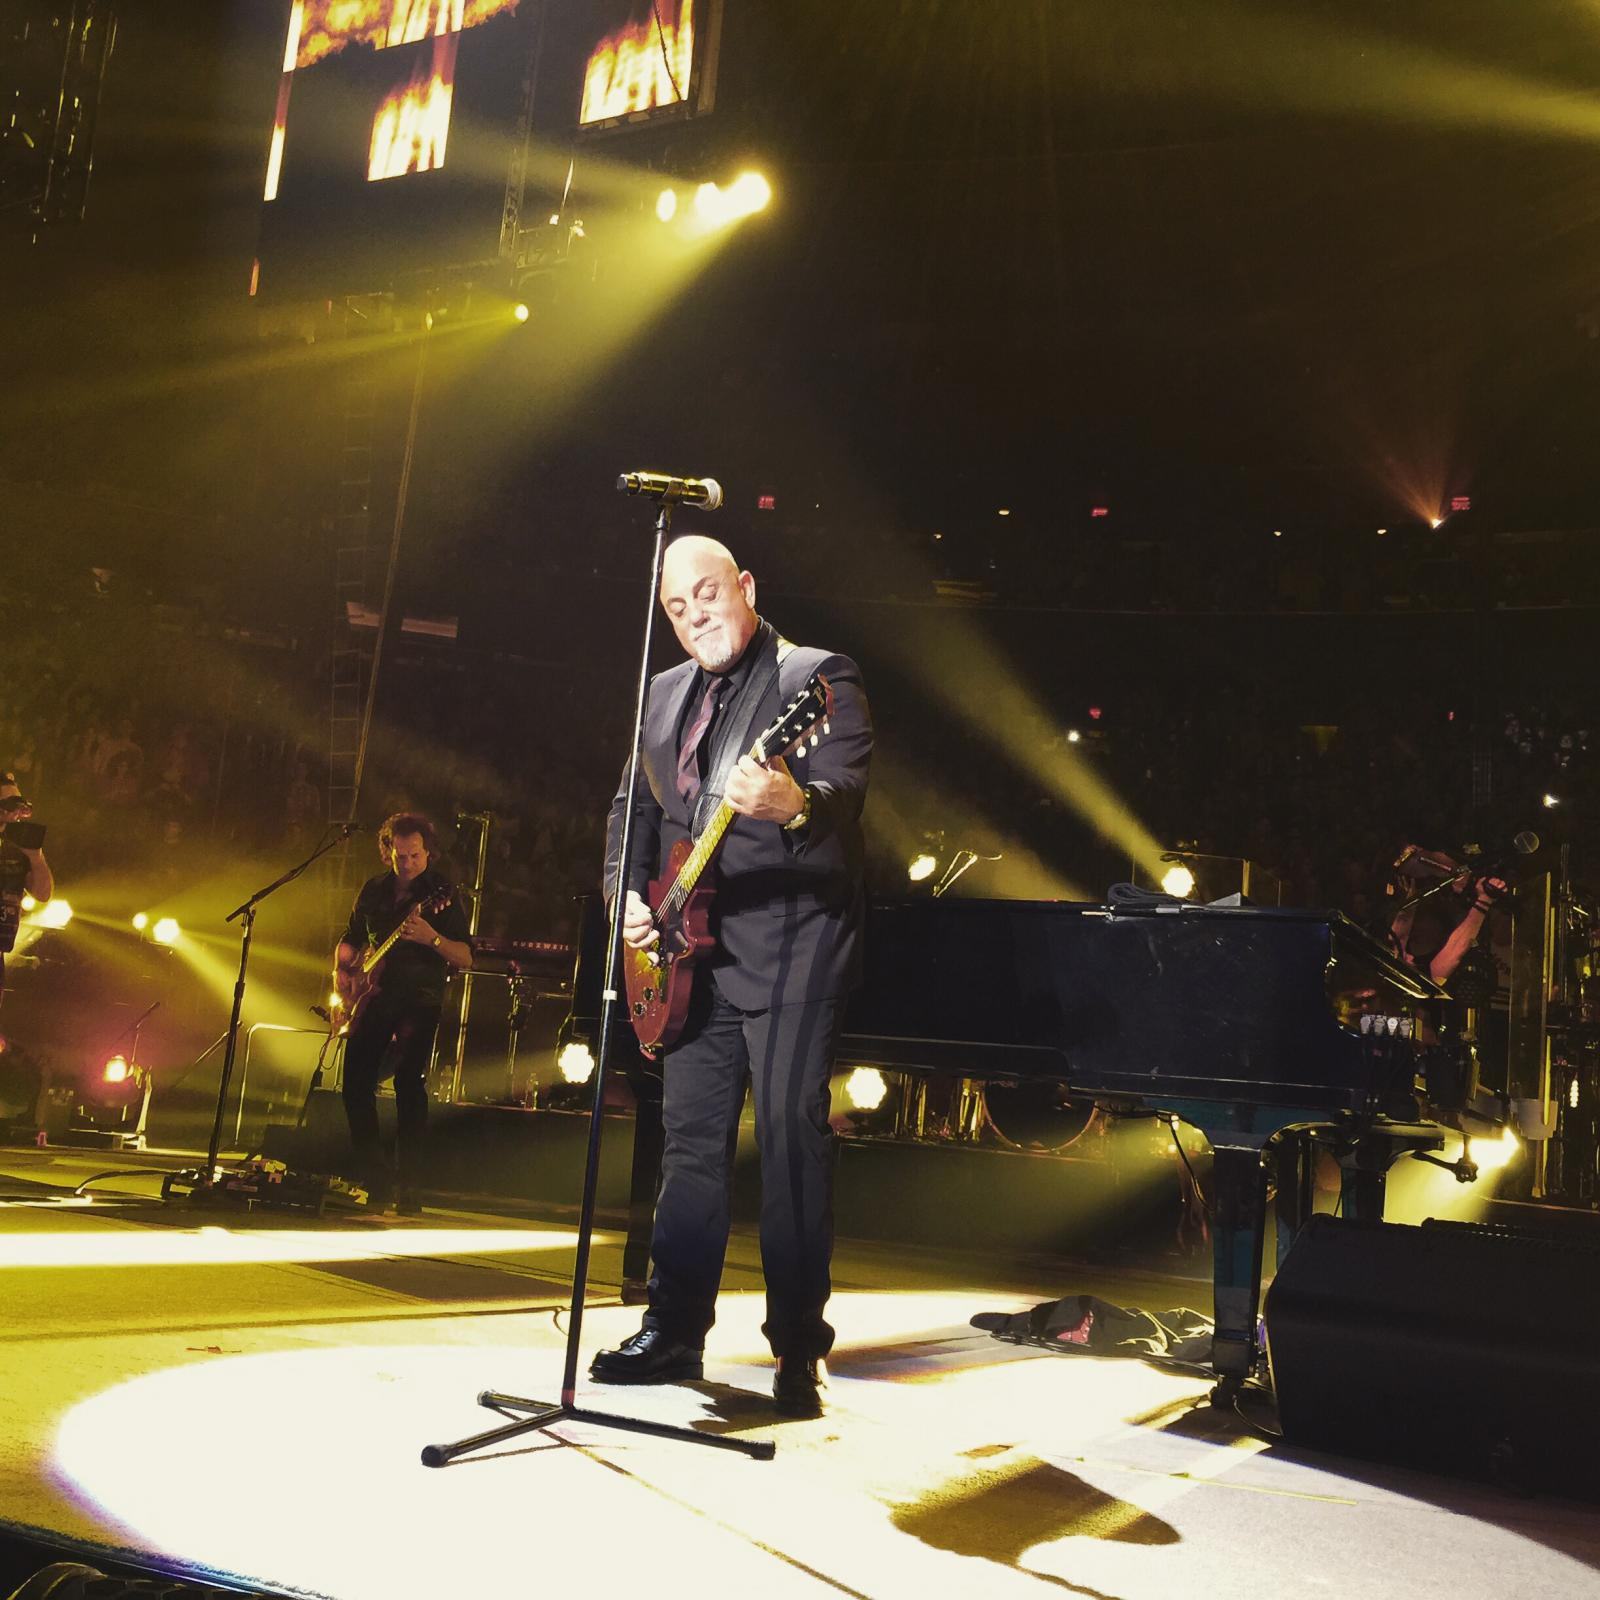 Billy Joel at Madison Square Garden 4/3/2015 - Billy Joel Official Site